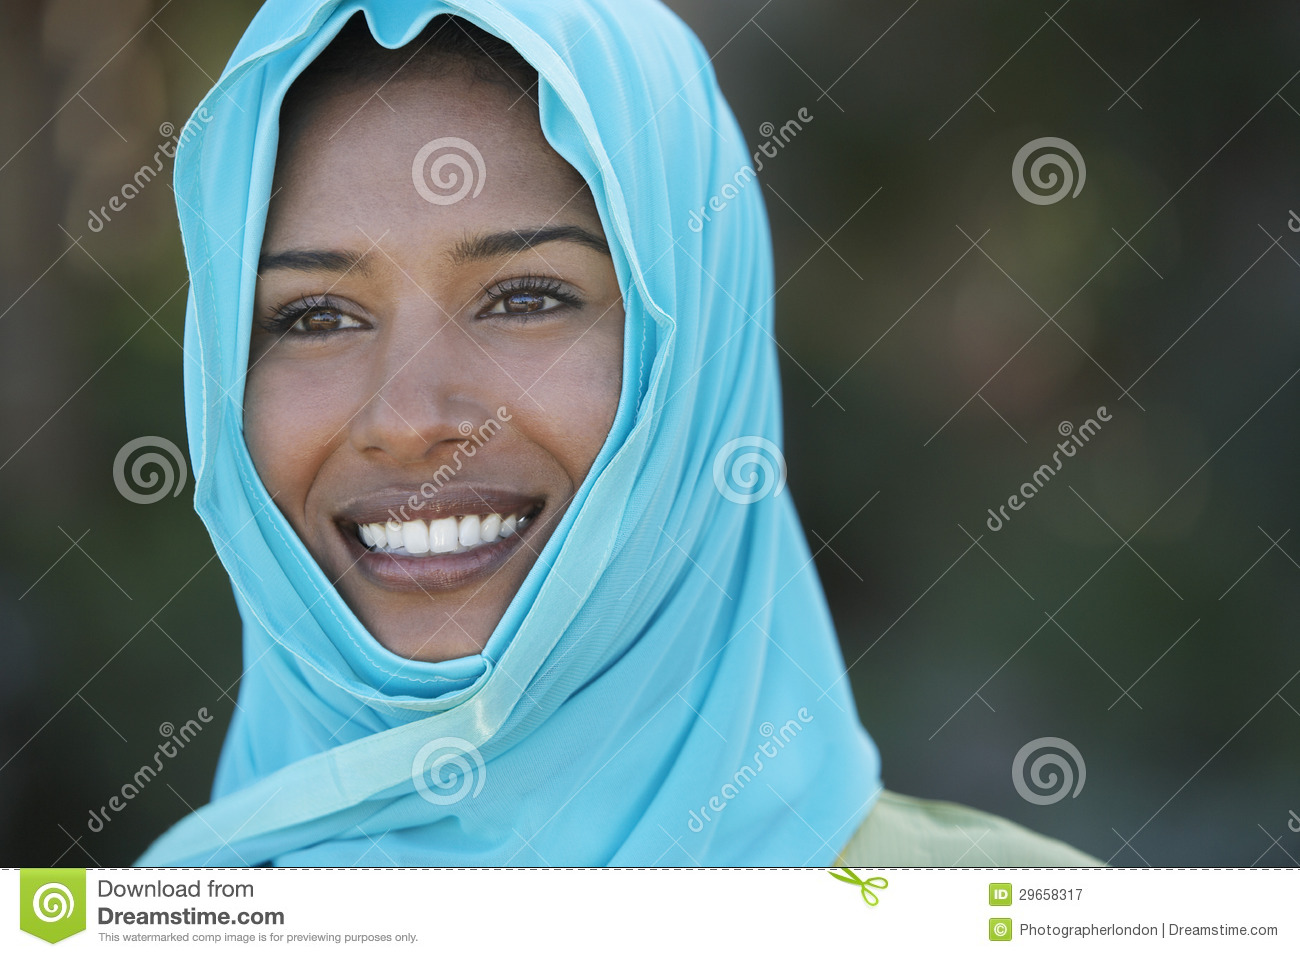 Image result for girl with blue headscarf indian